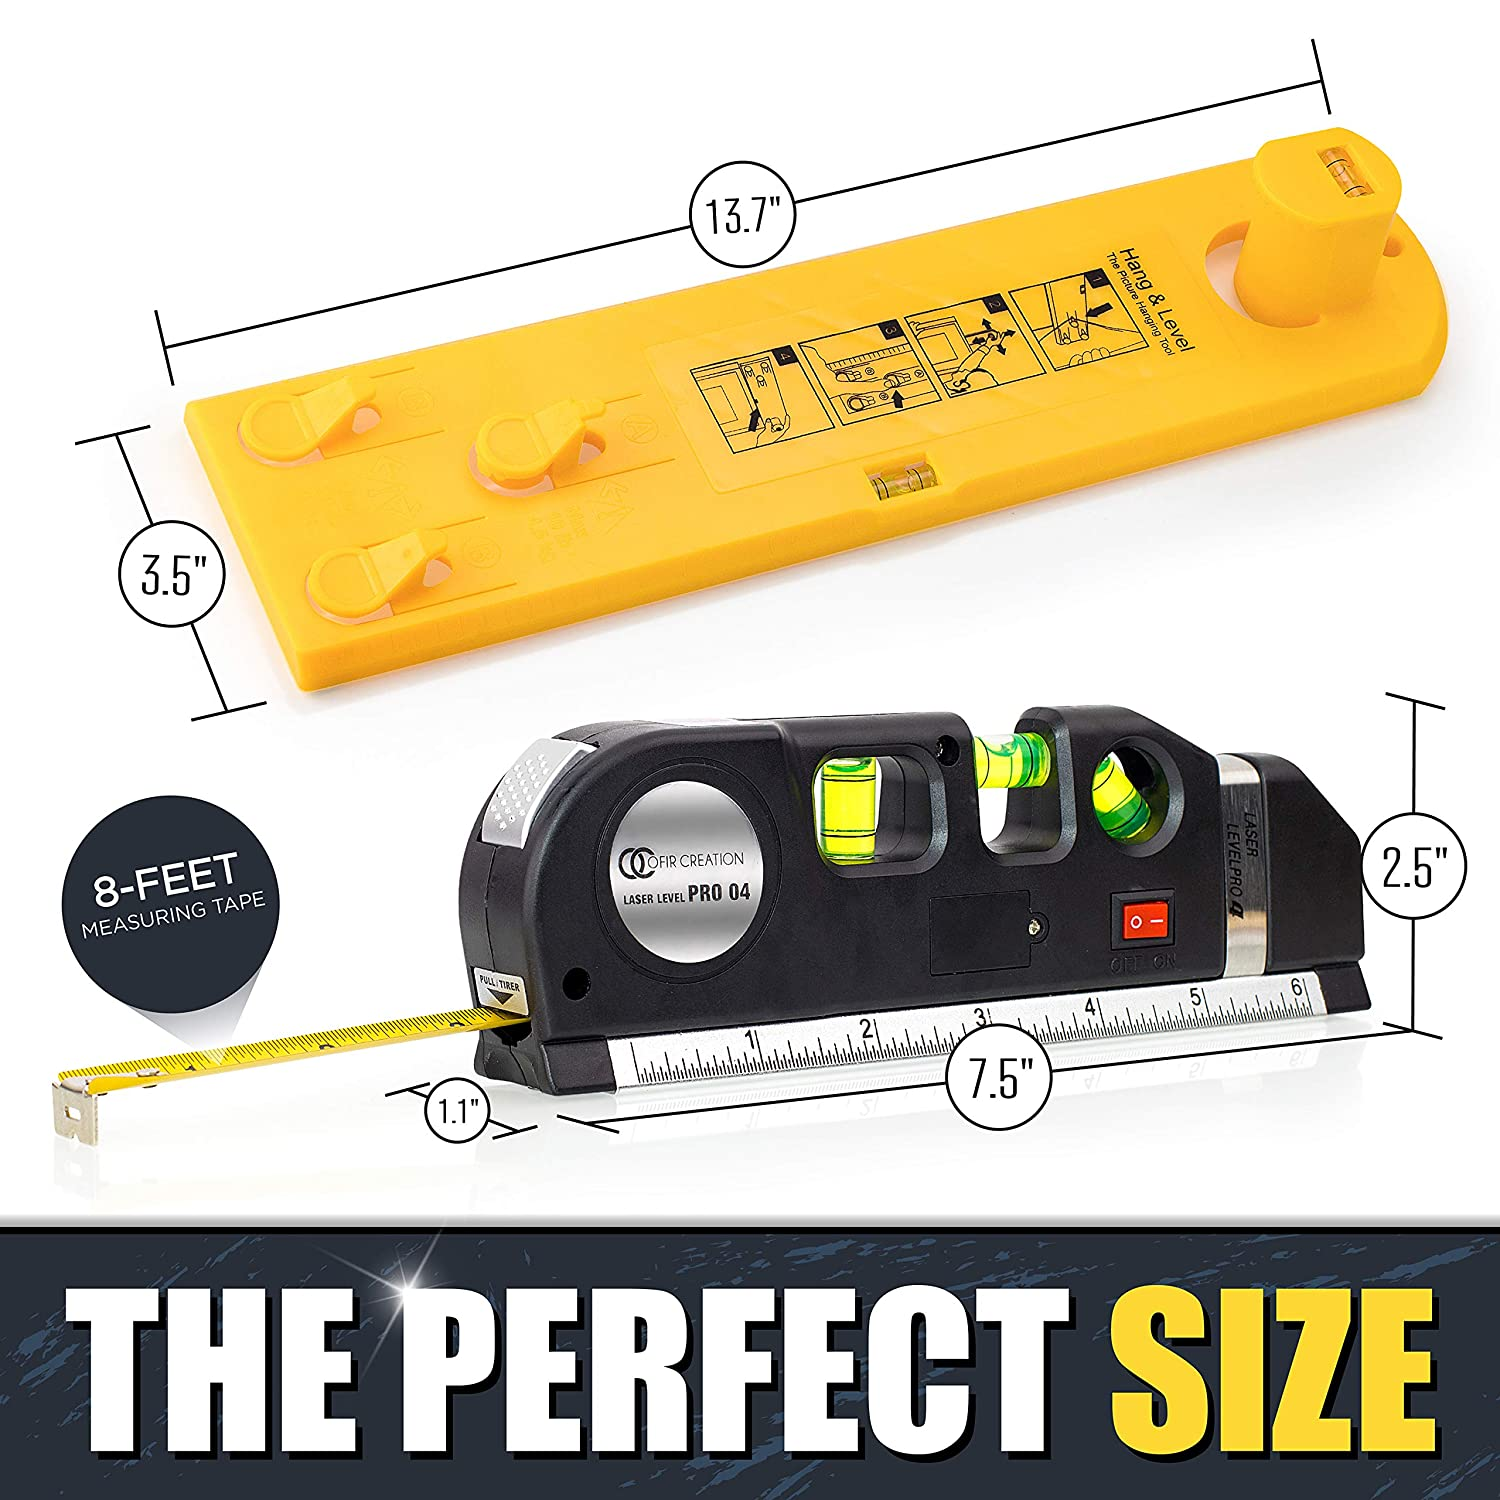 Vertical /& Horizontal Use Imperial /& Metric Measurements Contractor Tool Ofircreation 3-in-1 Laser Level 3.5mV w//Built-In Measuring Tape Multipurpose Woodworking Picture Hanger Tool